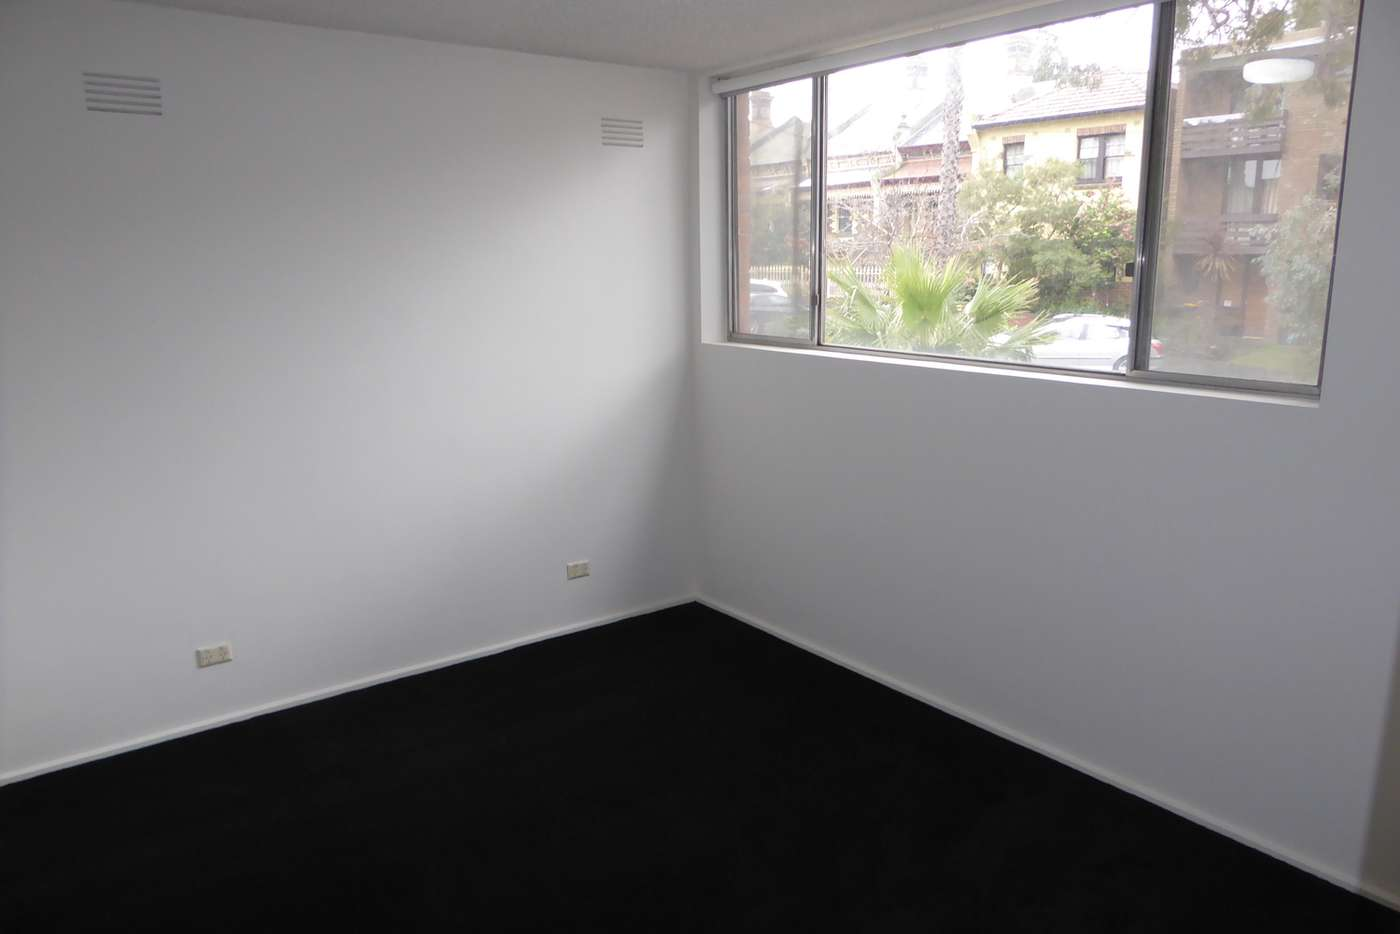 Sixth view of Homely apartment listing, 7/19 Wood Street, North Melbourne VIC 3051